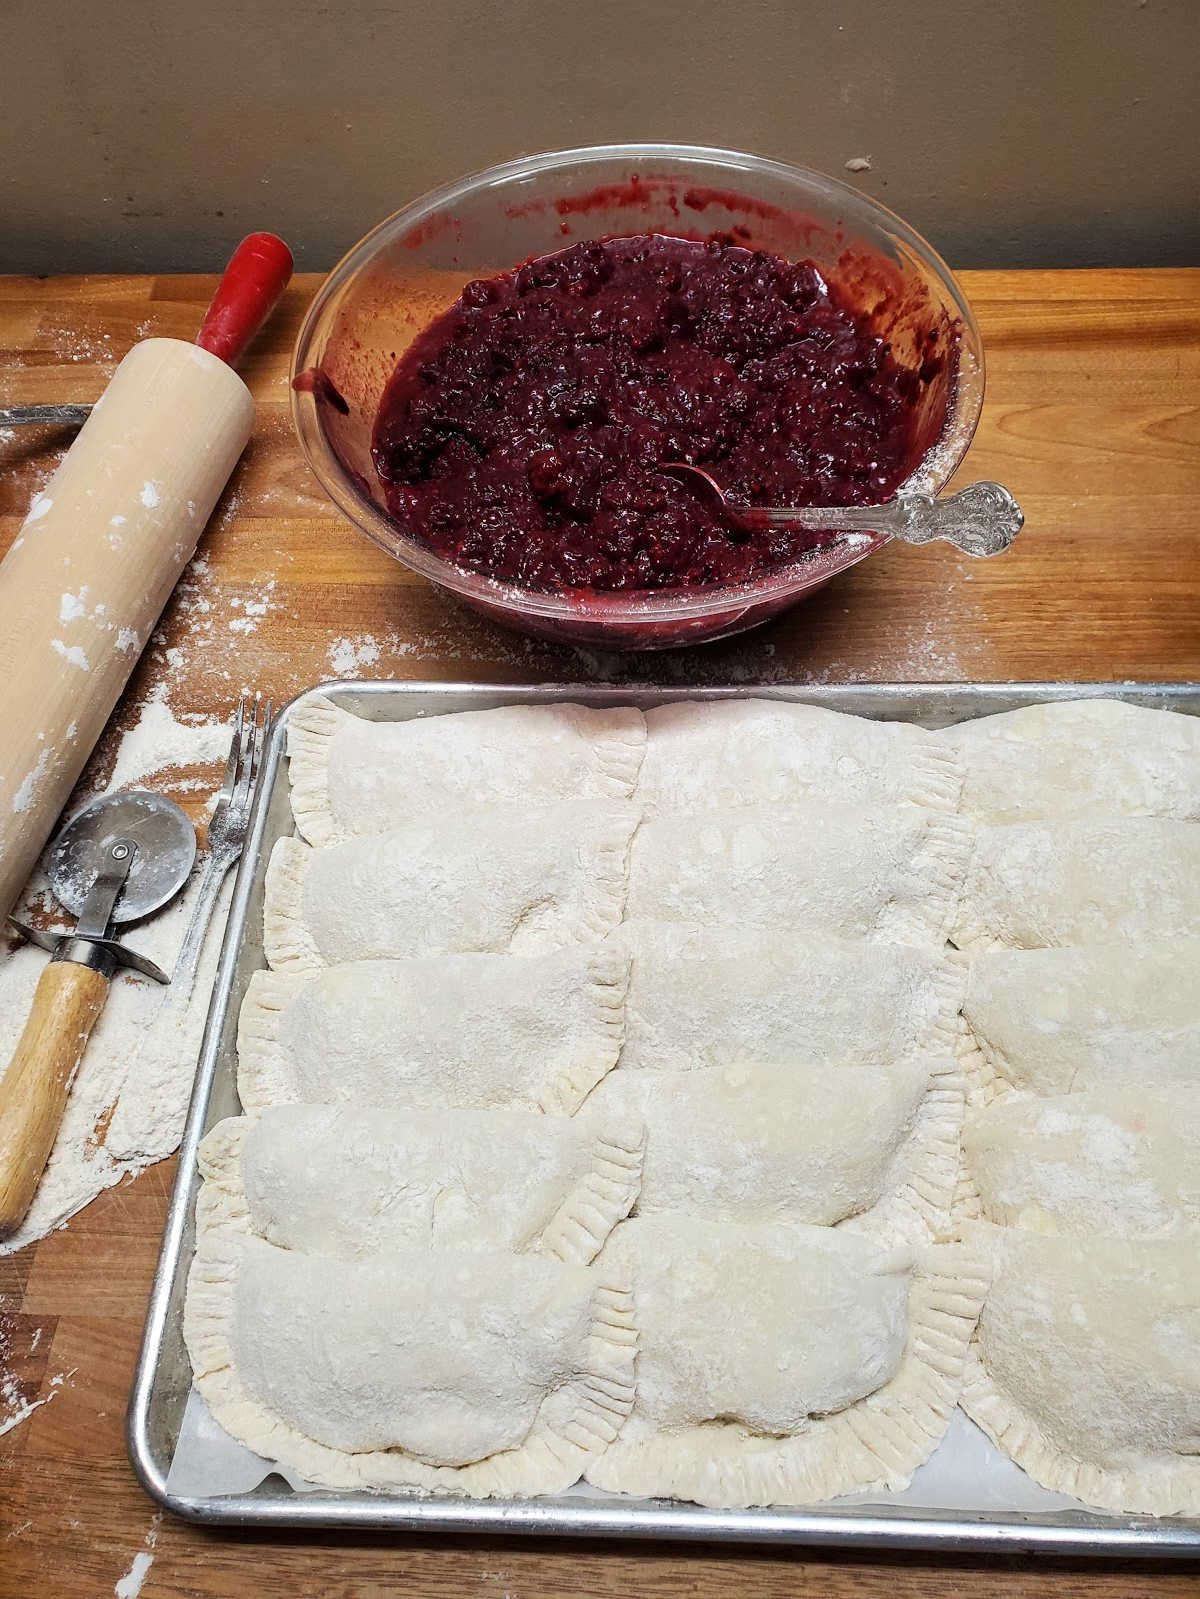 Uncooked blackberry hand pies on half sheet pan, clear glass bowl of blackberry pie filling on butcher block.